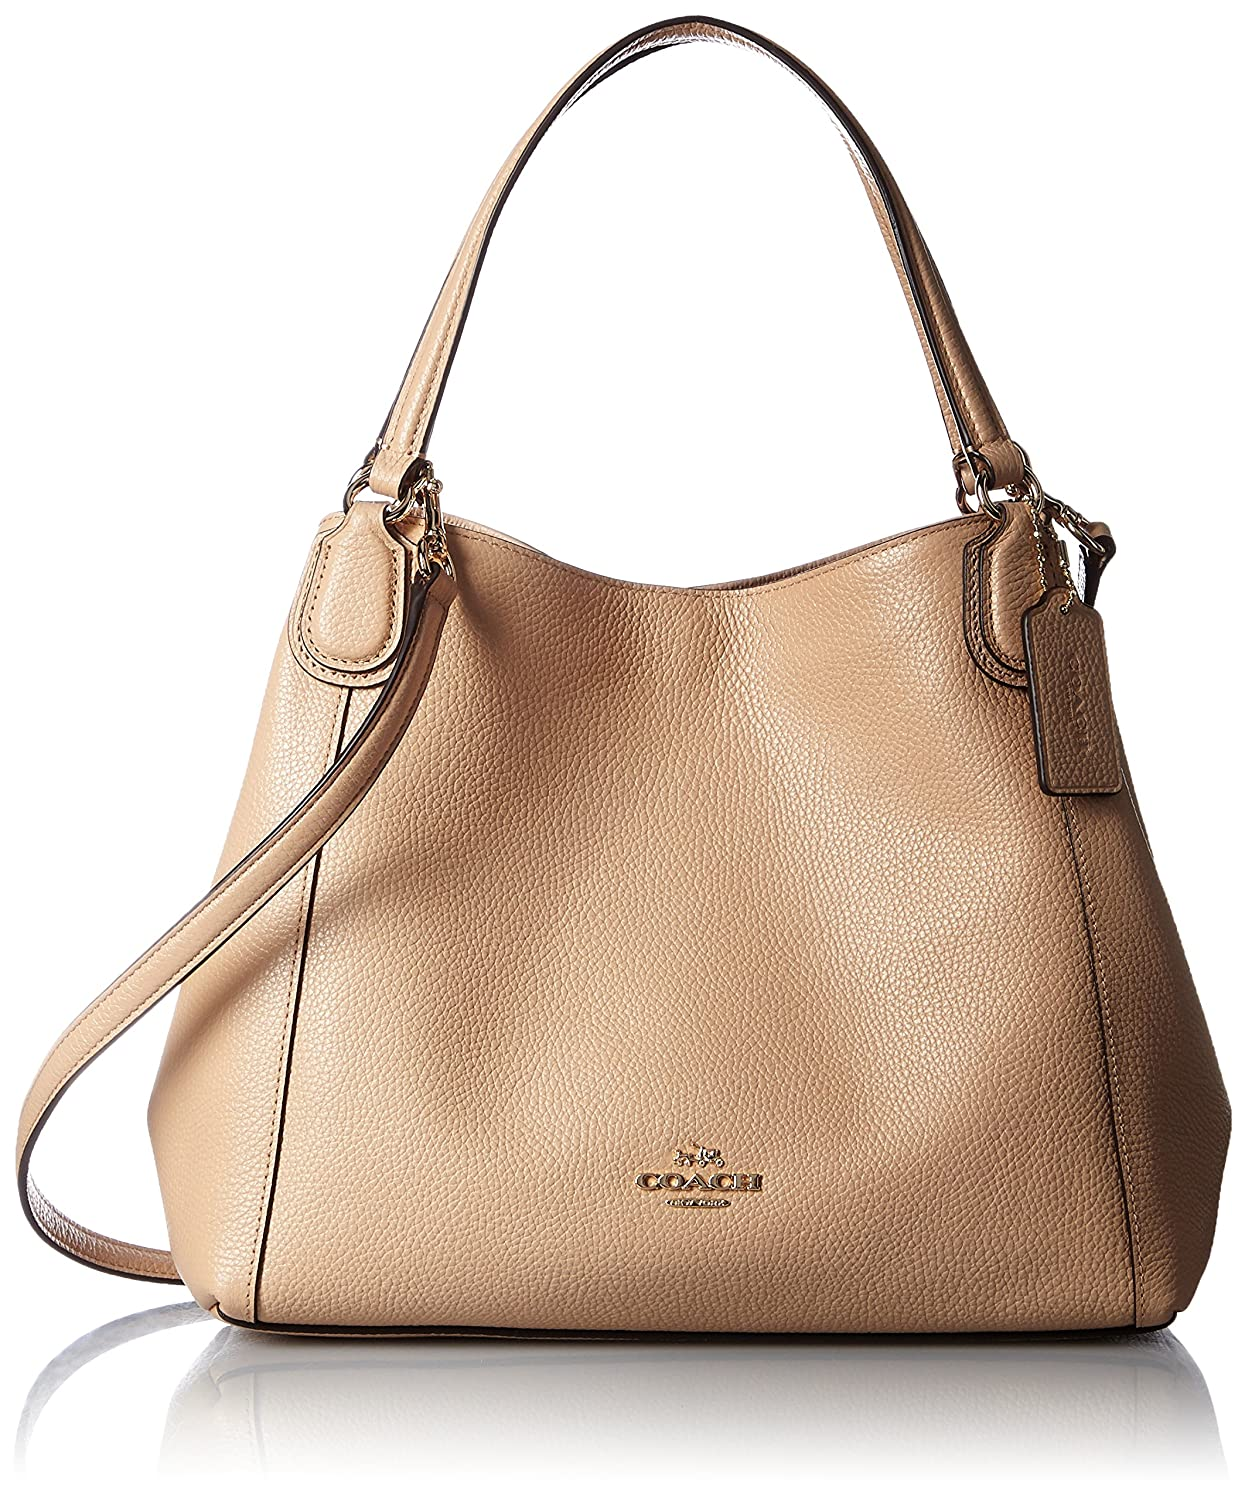 3cf07f69 Coach Edie Shoulder Bag 28 in Pebble Leather Color Light Gold ...